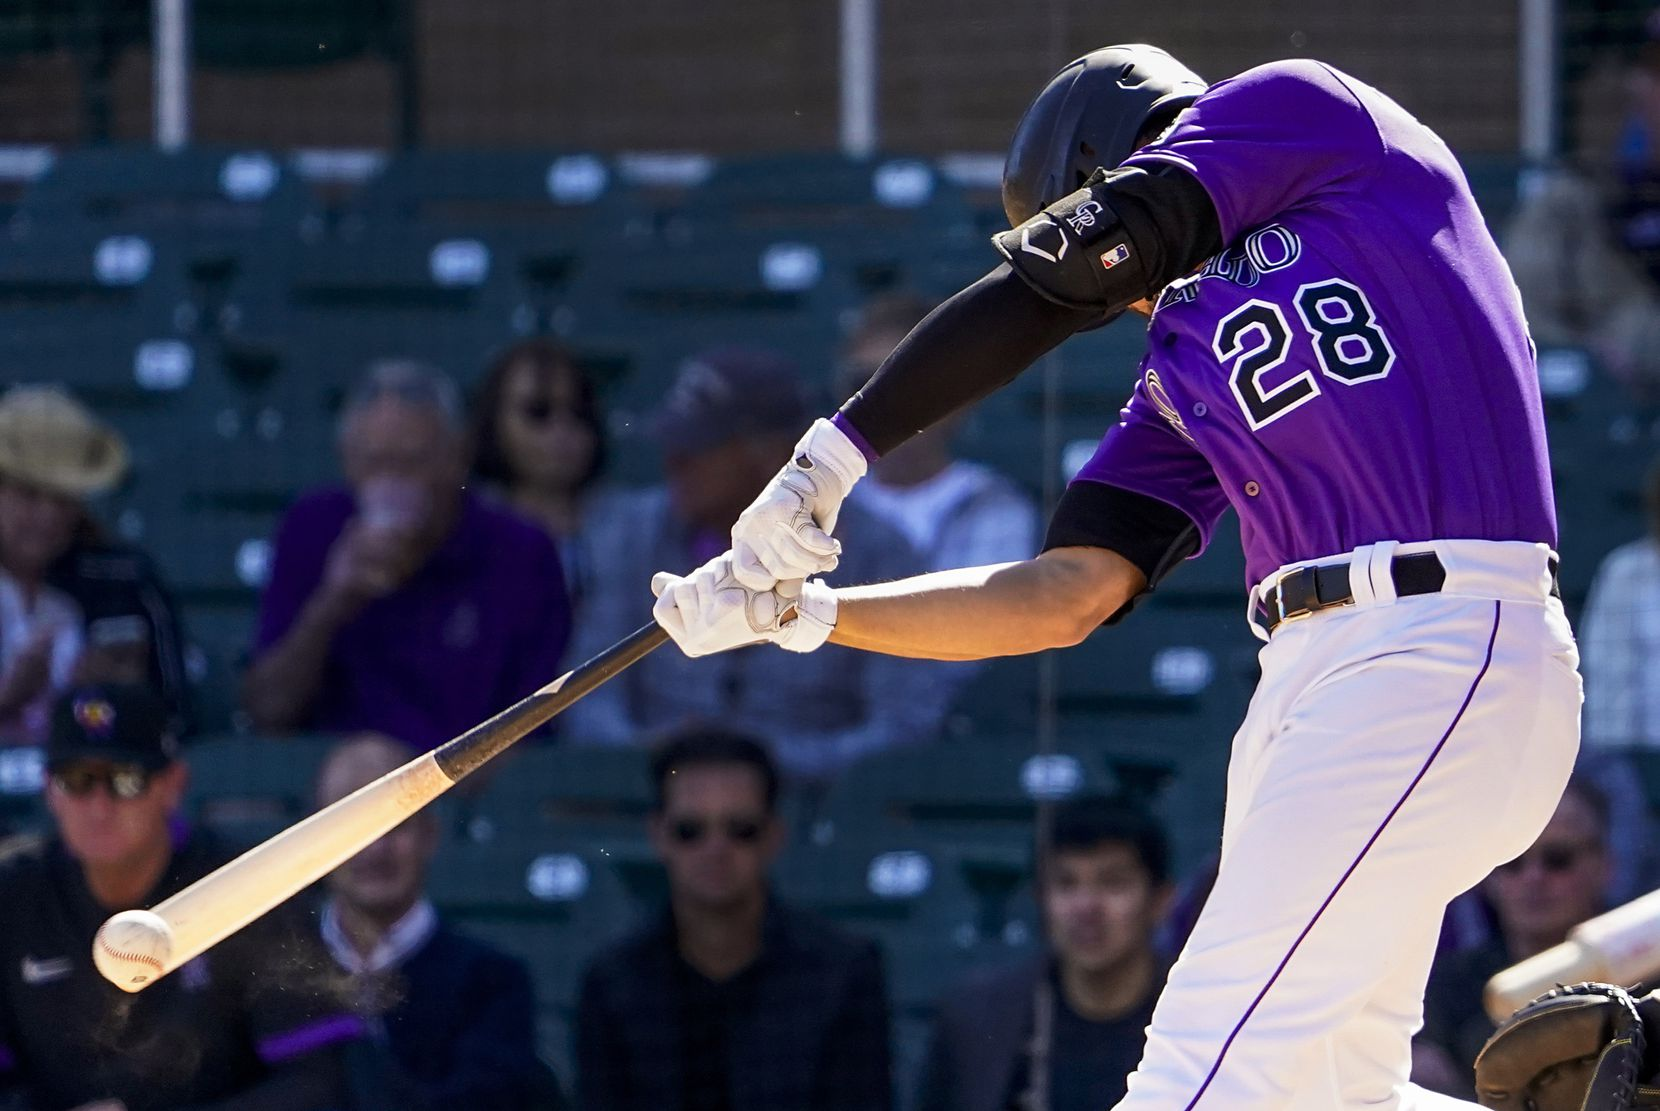 Colorado Rockies third baseman Nolan Arenado bats during the third inning of a spring training game against the Texas Rangers at Salt River Fields at Talking Stick on Wednesday, Feb. 26, 2020, in Scottsdale, Ariz.